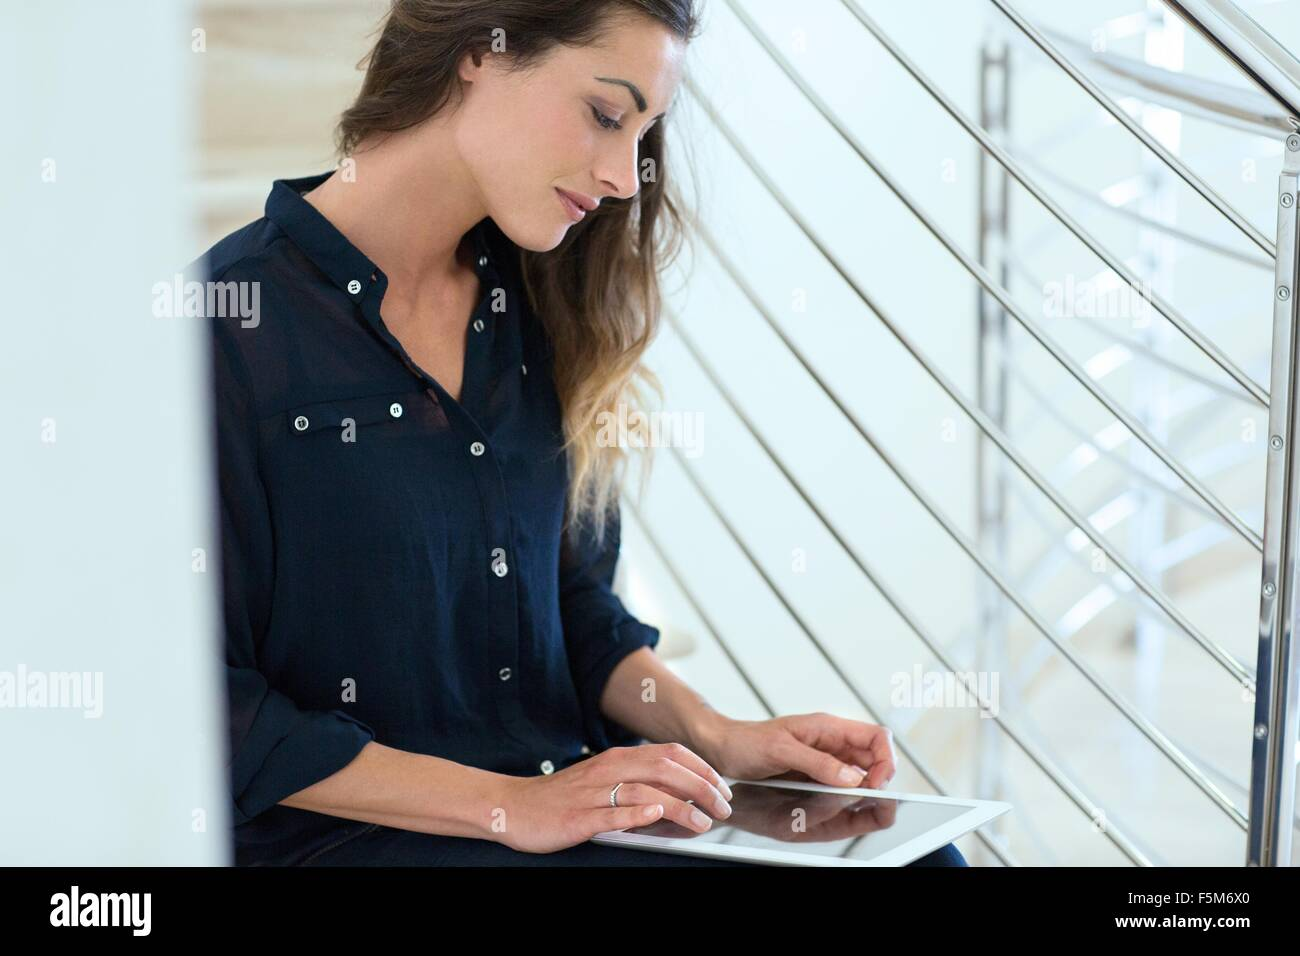 Young businesswoman using digital tablet on office stairway - Stock Image